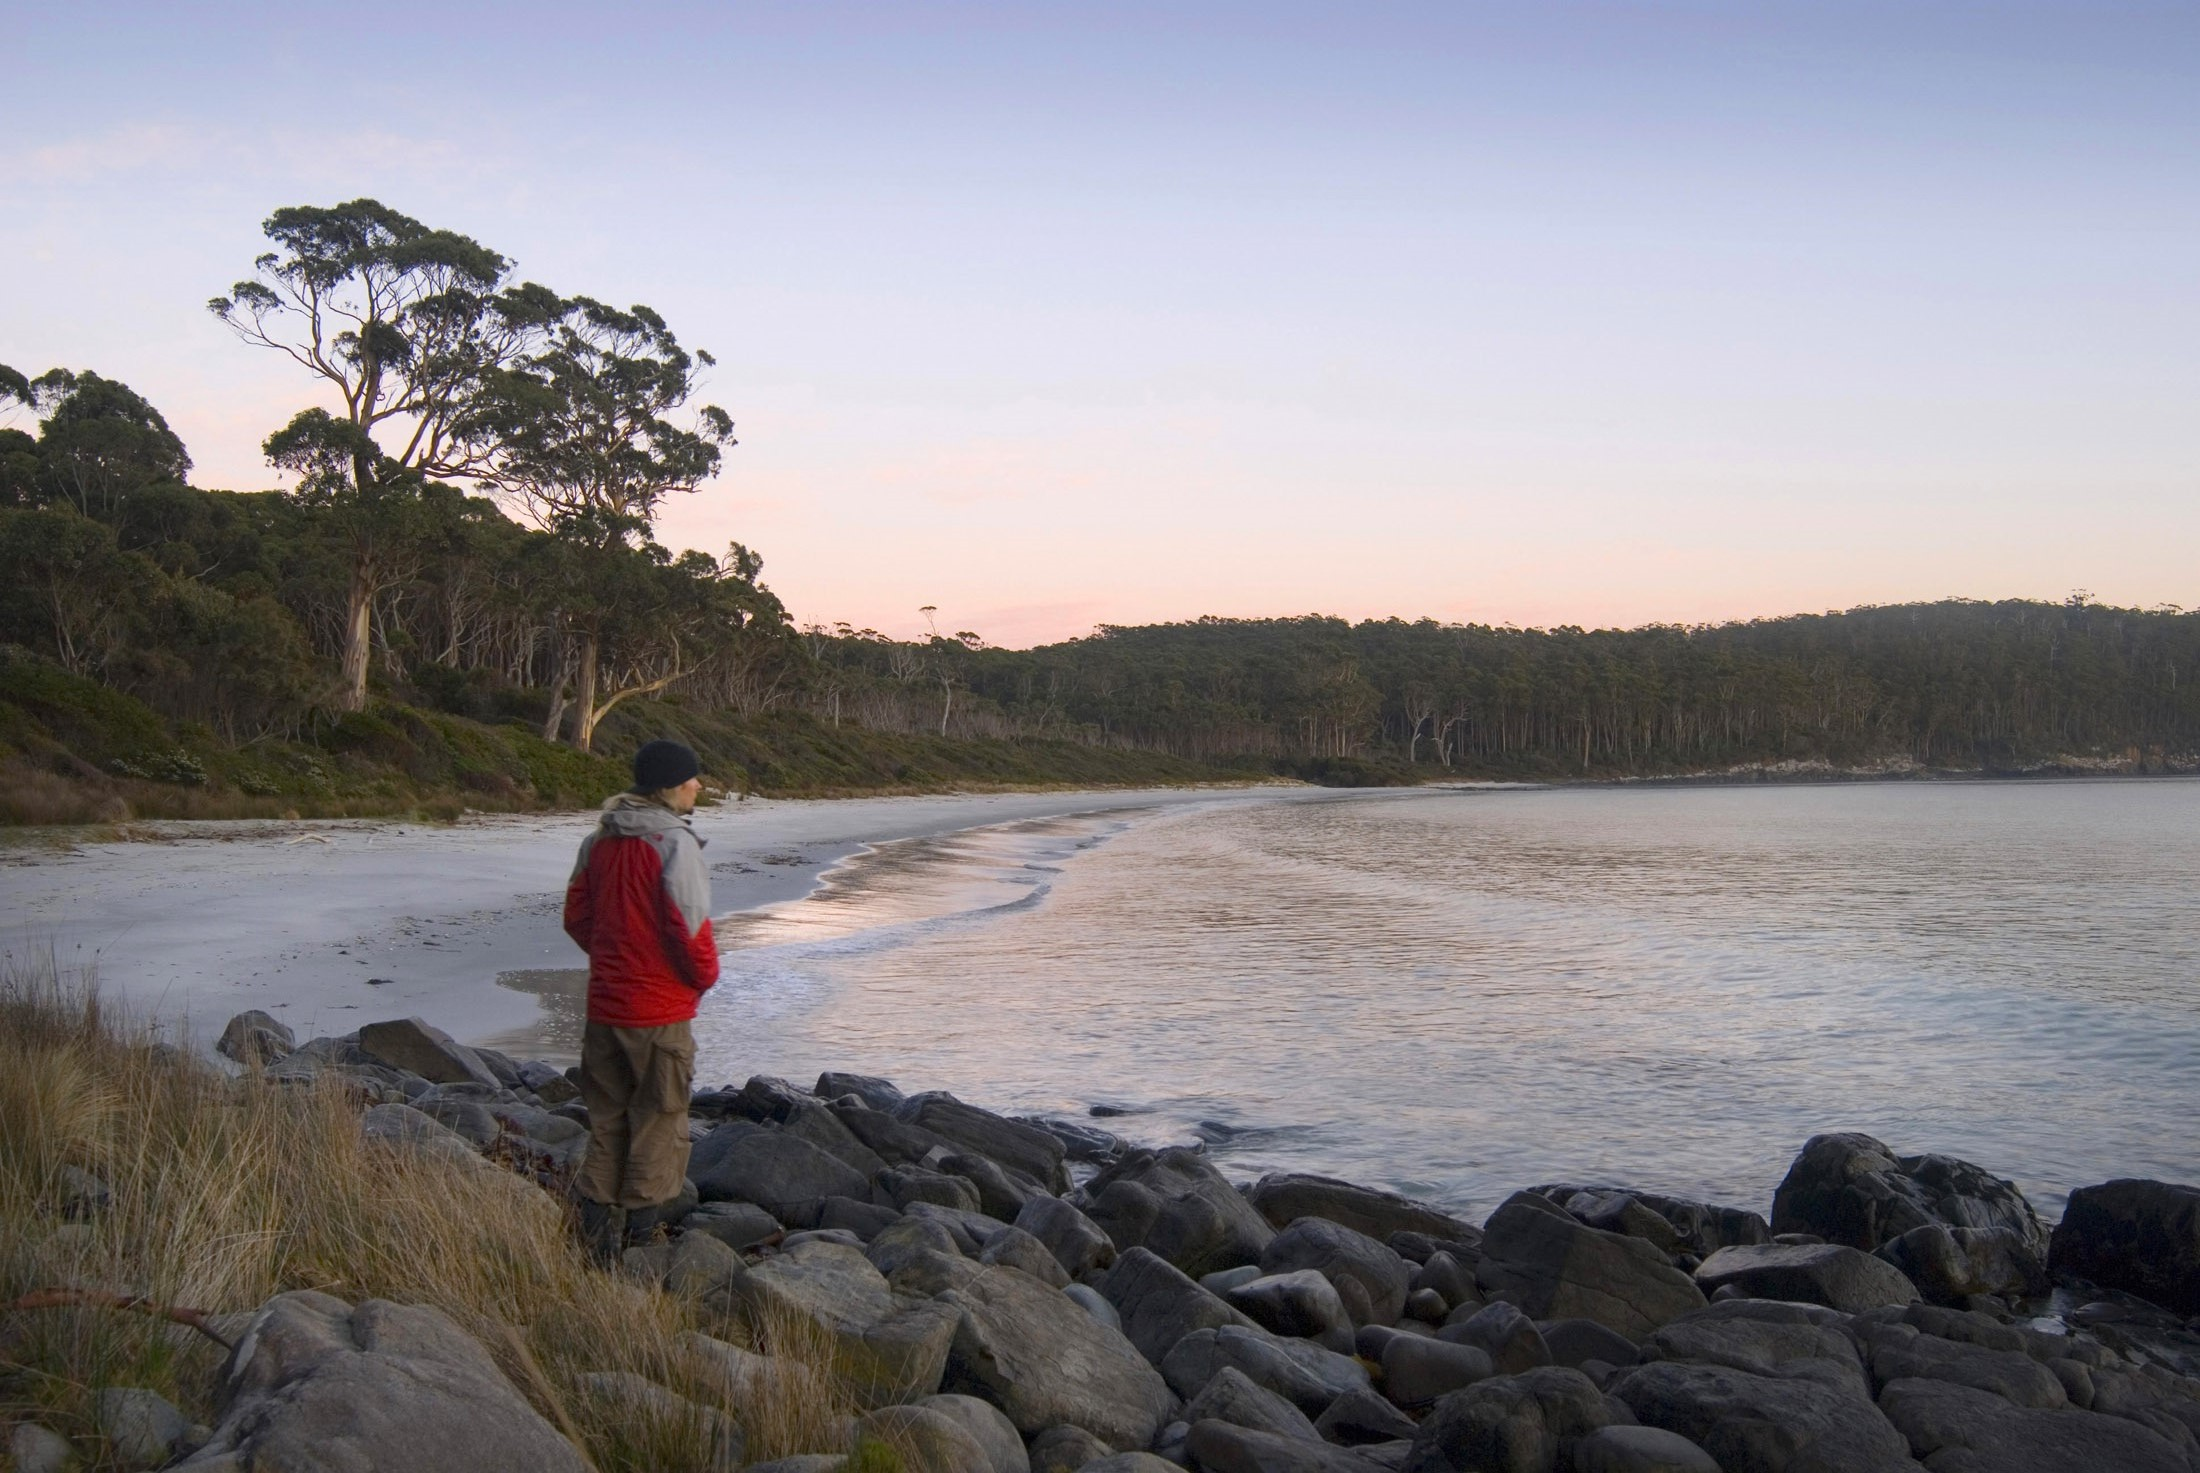 looking out at the sunrise over fortescue bay, tasman peninsula